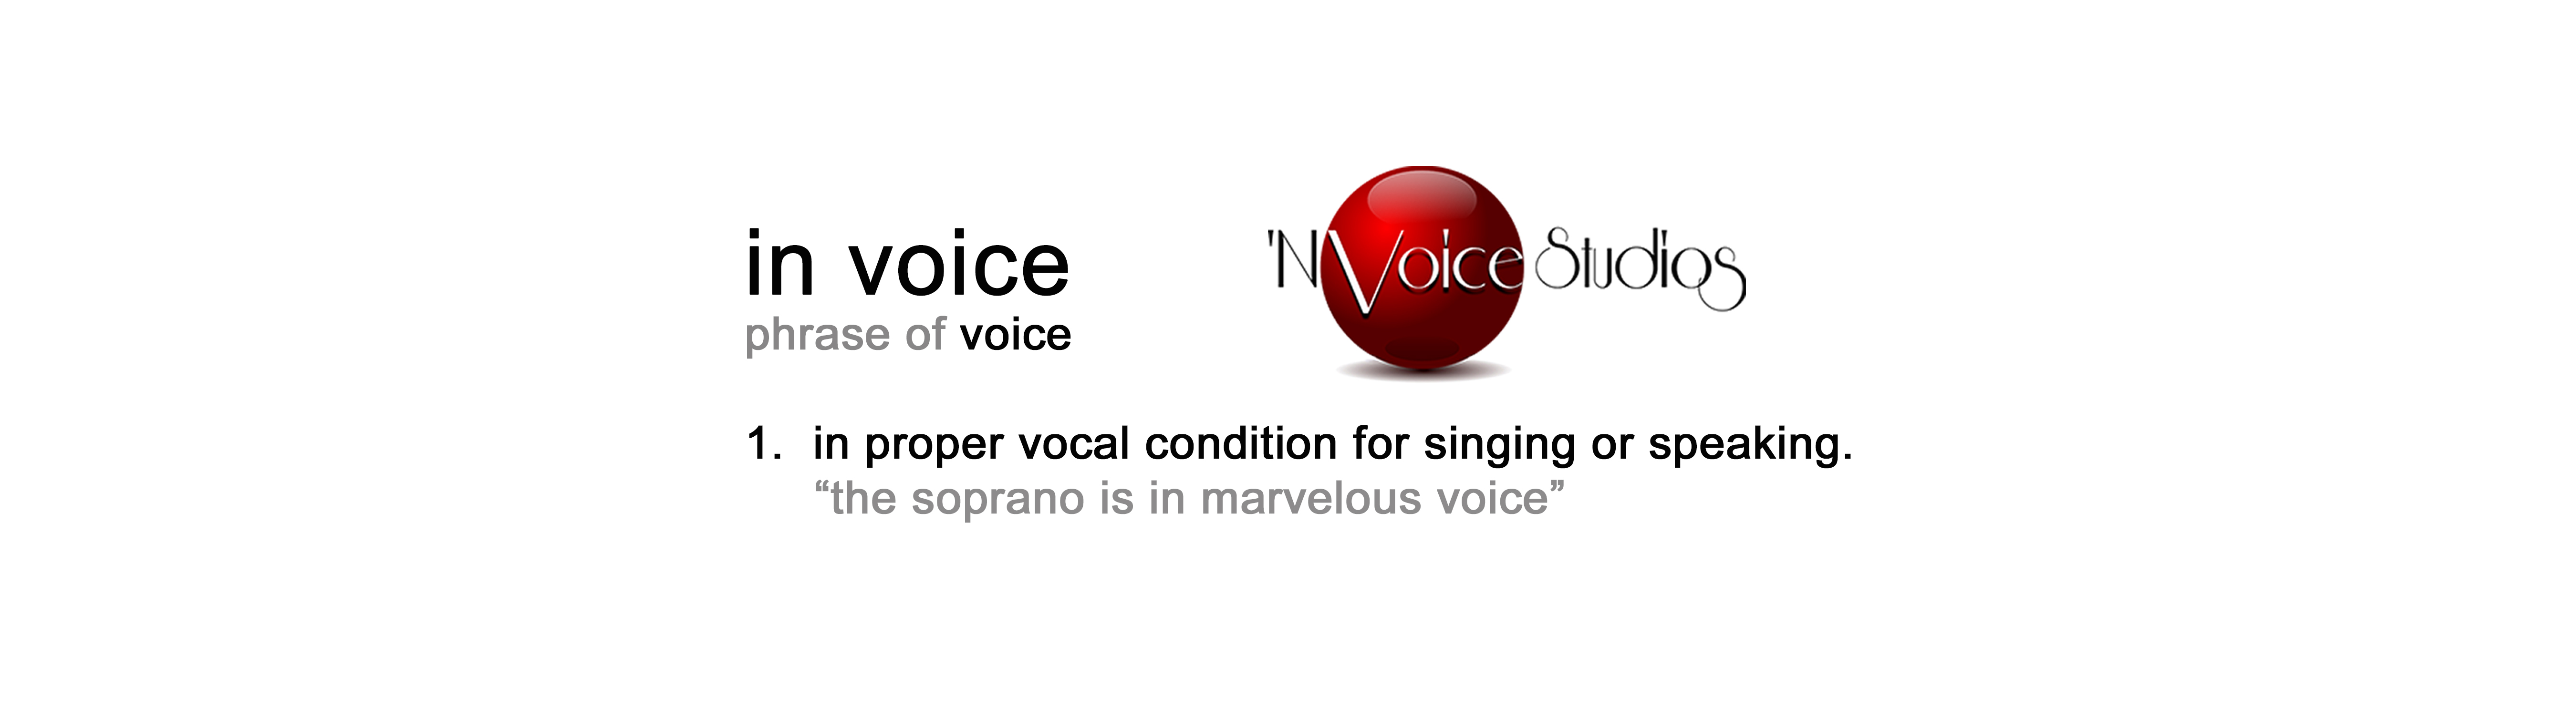 in voice definition banner